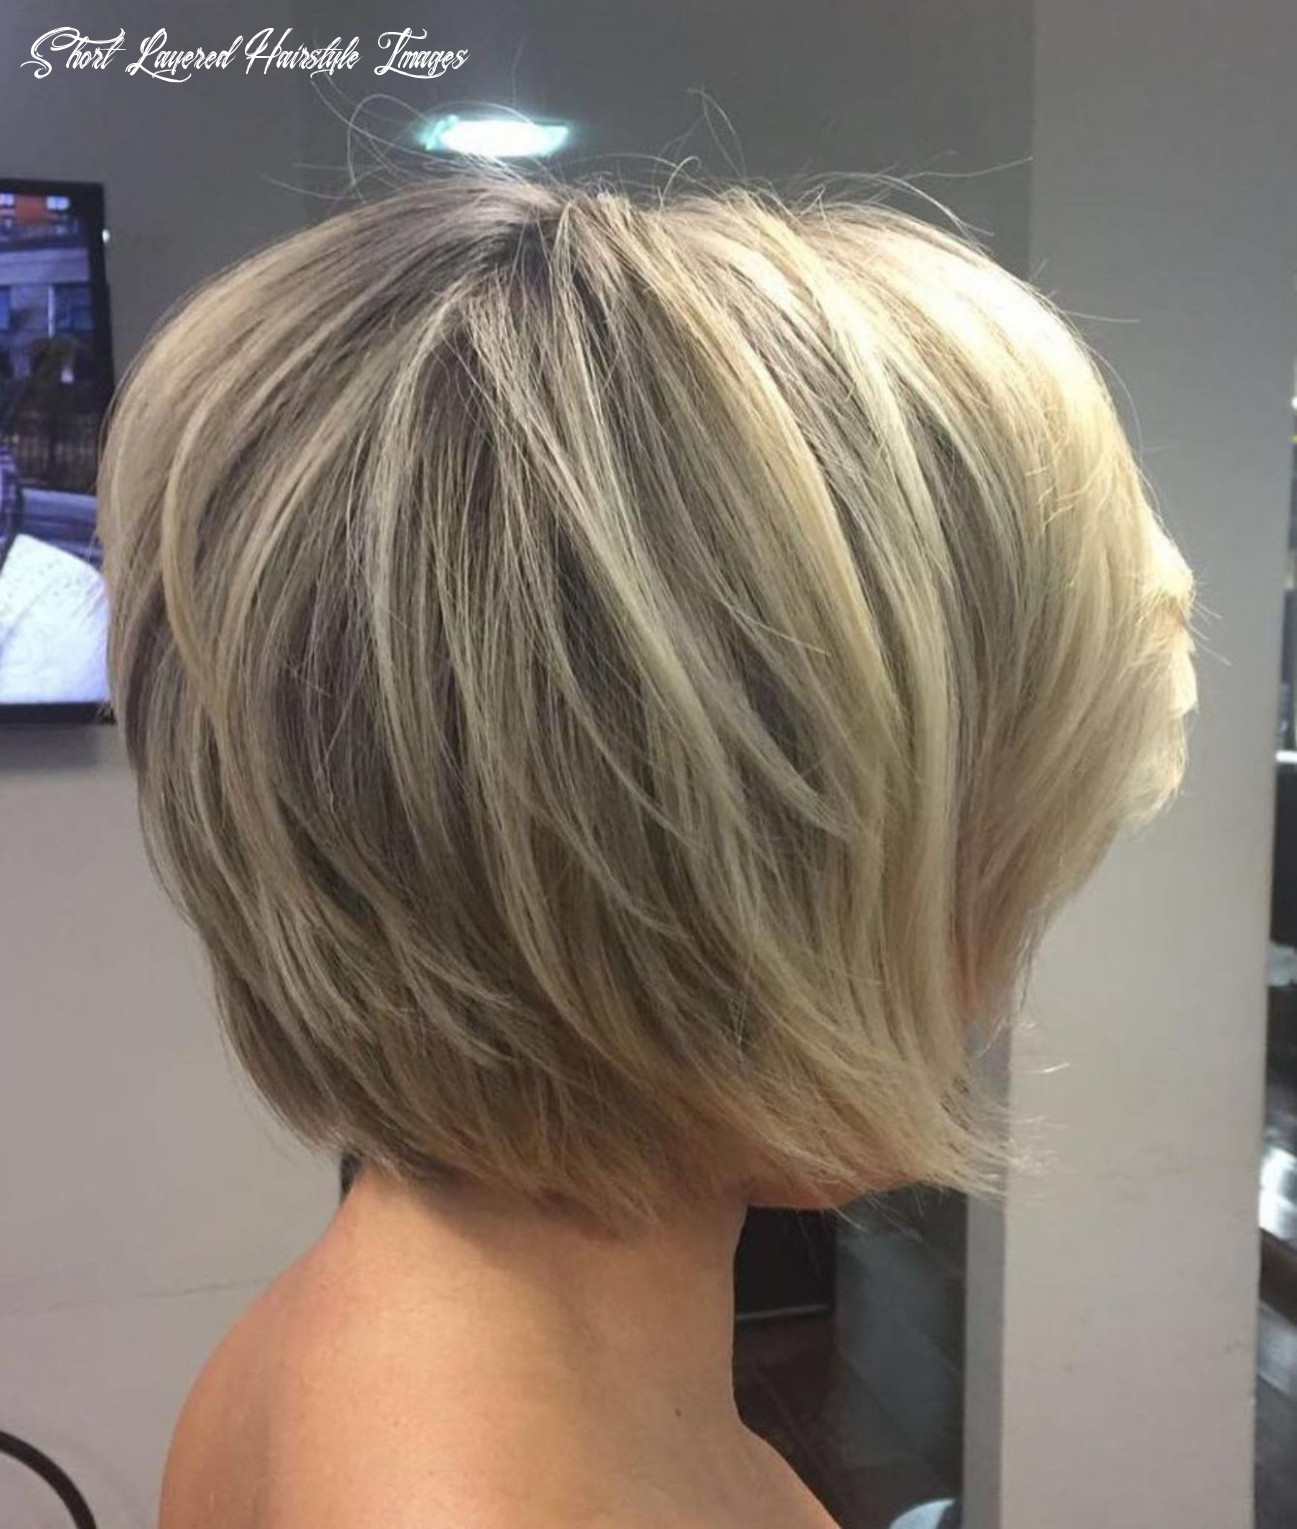 Pin on hair care short layered hairstyle images